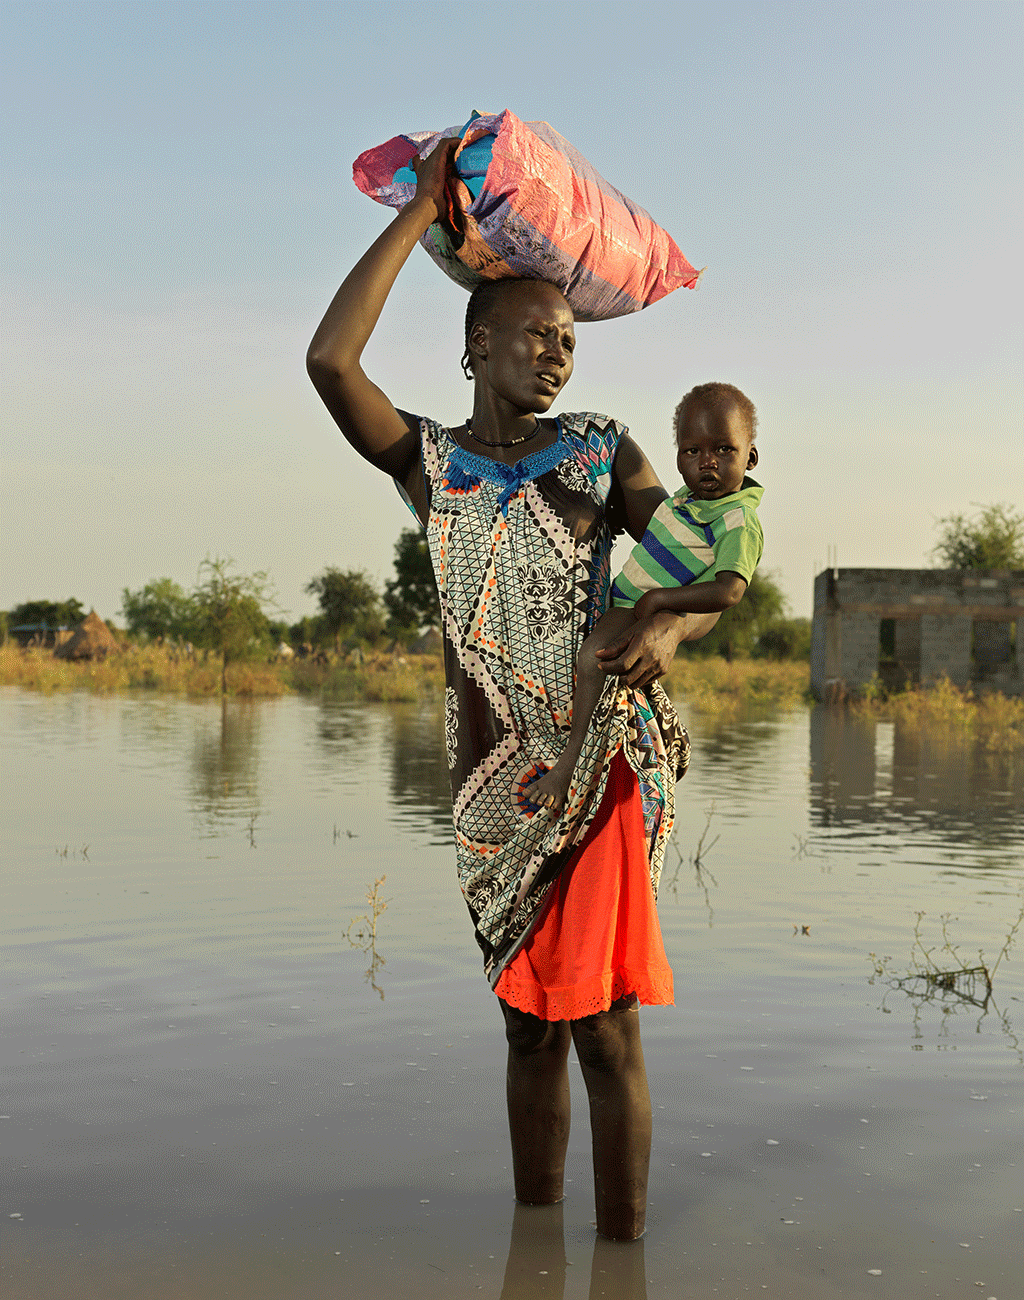 Nyapini Long, 30, heads to find higher ground with all her belongings in South Sudan